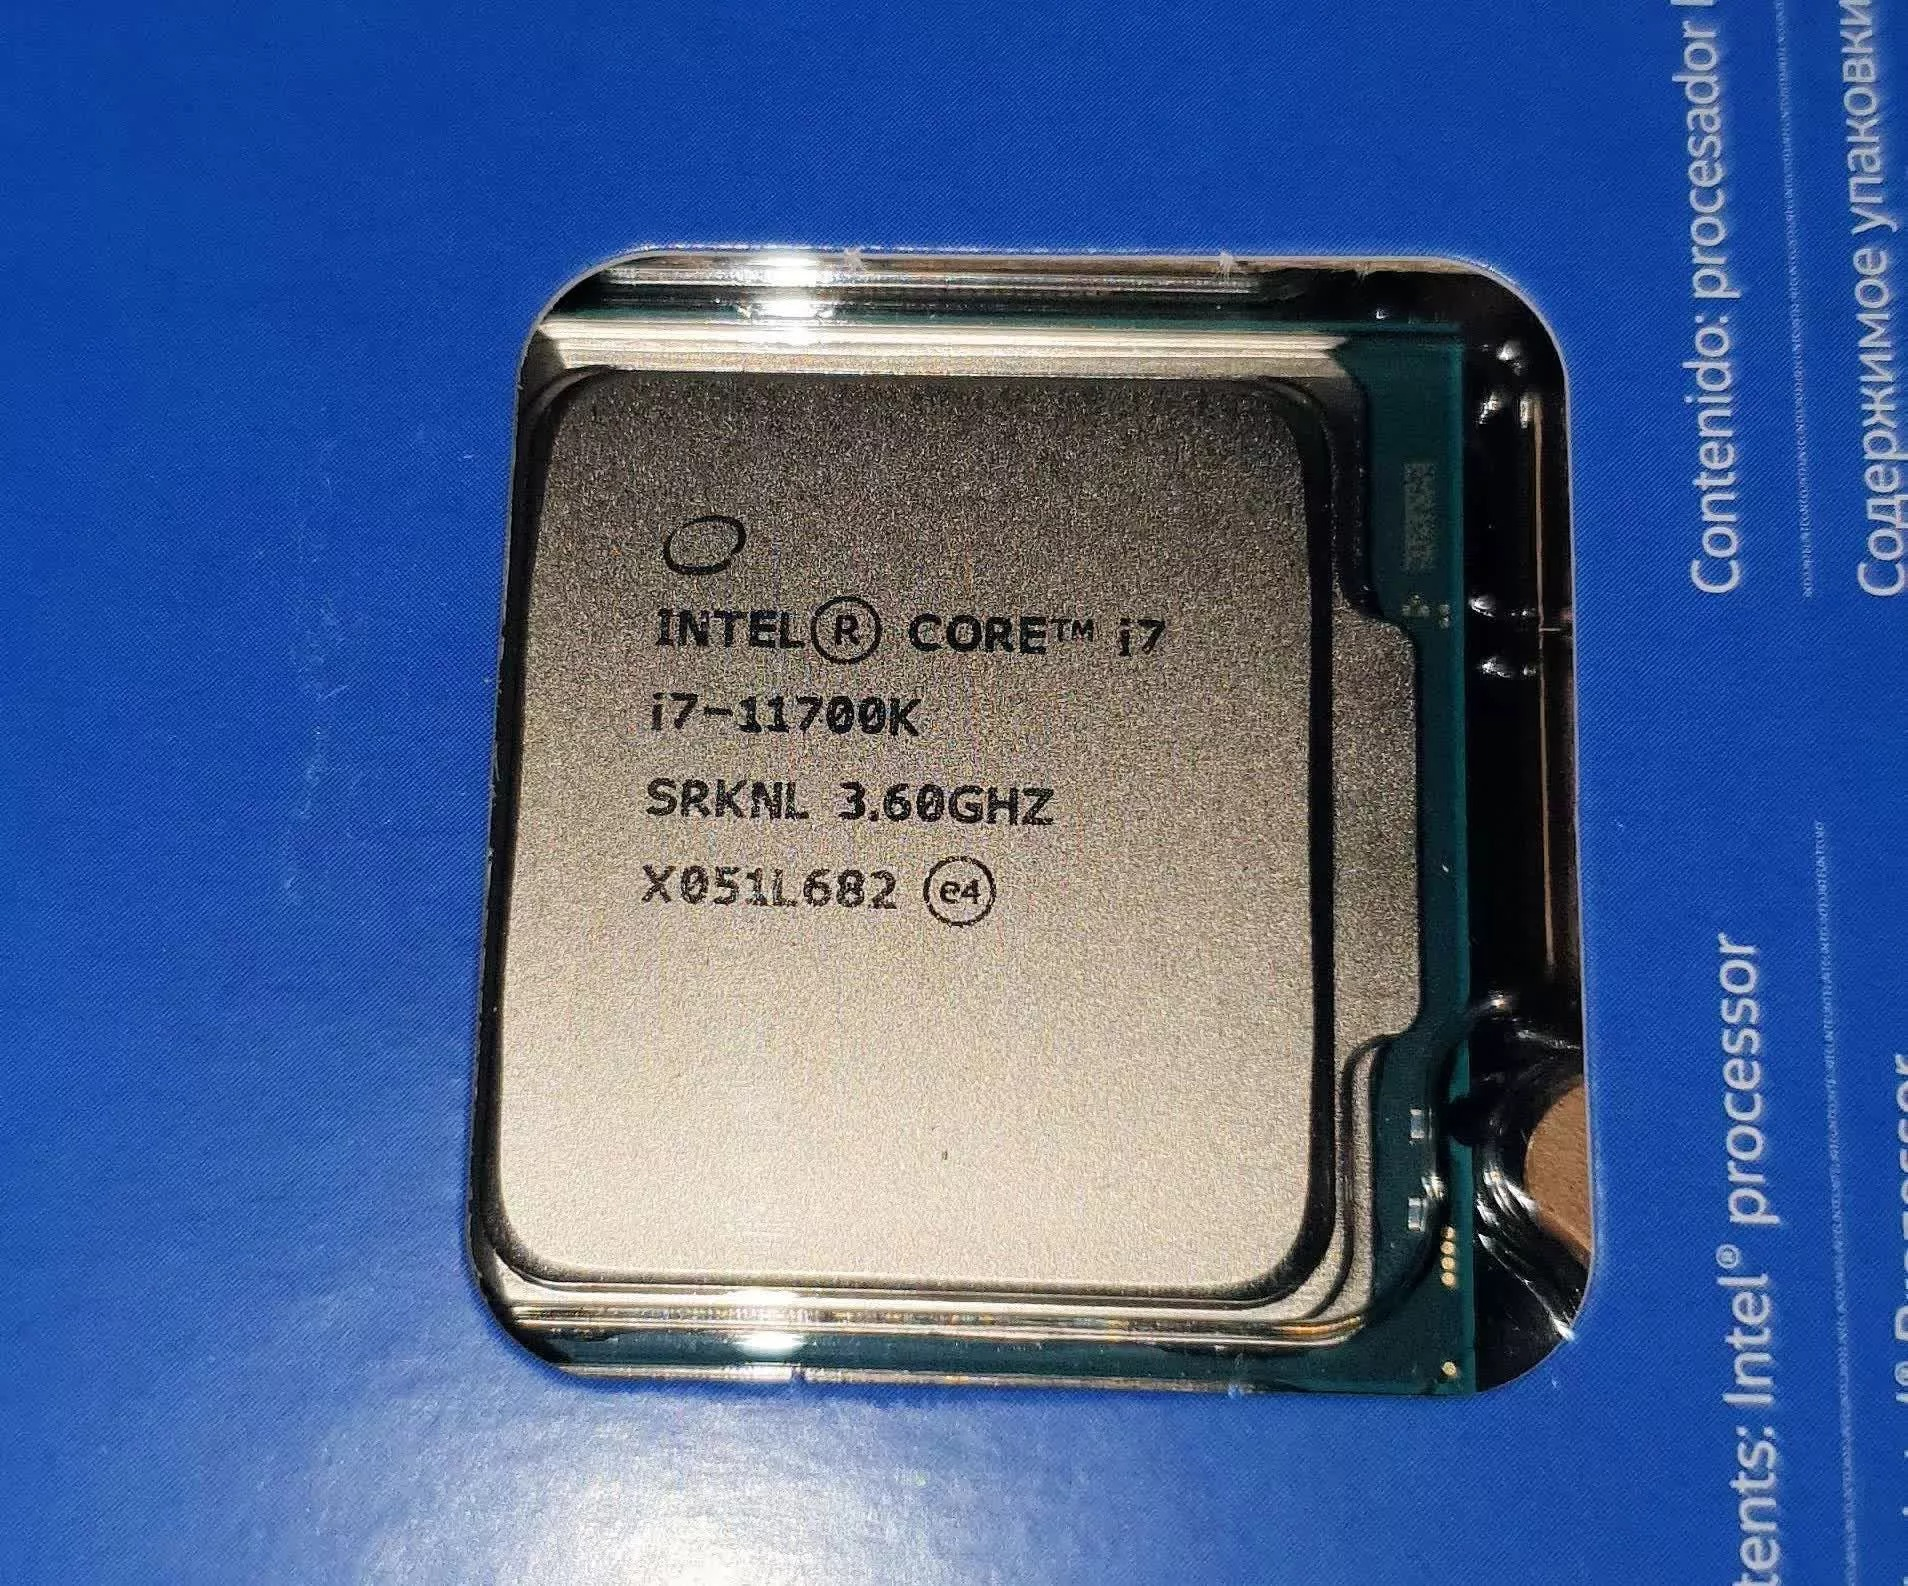 Intel's Rocket Lake Core i9-11900K and i7-11700K expected to offer roughly the same performance